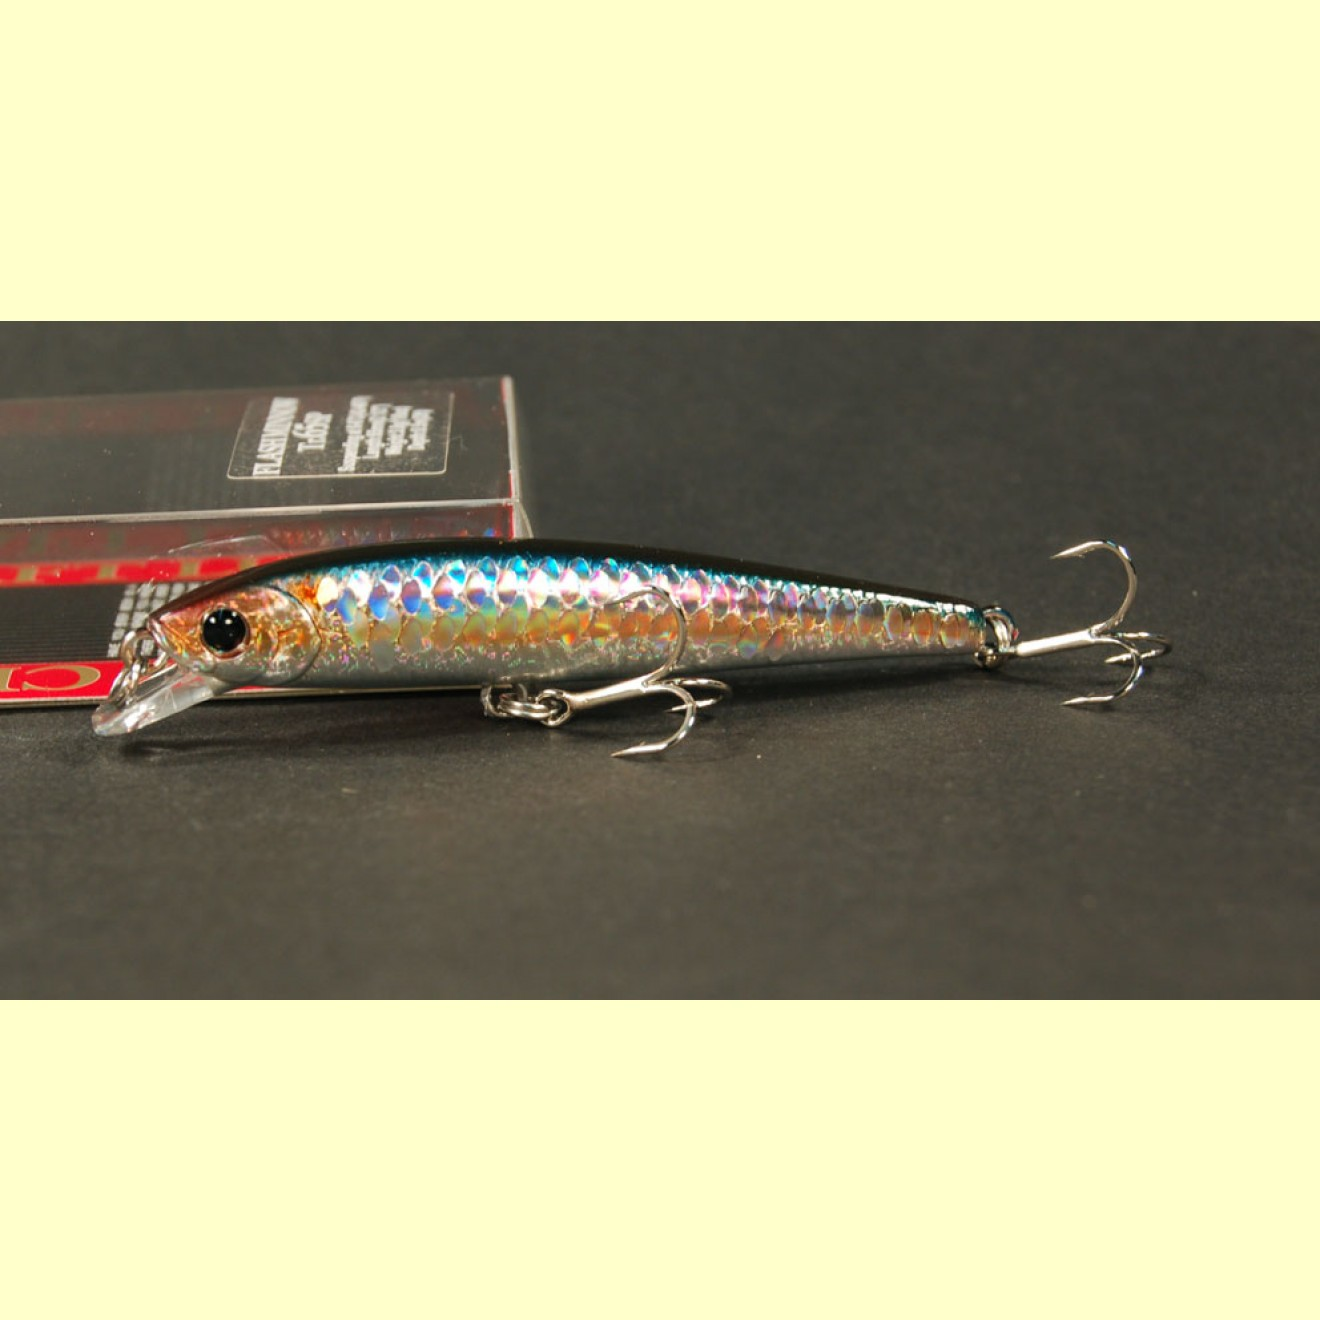 Flash minnow 65 tr sp ms american shad lucky craft for Lucky craft pointer 65